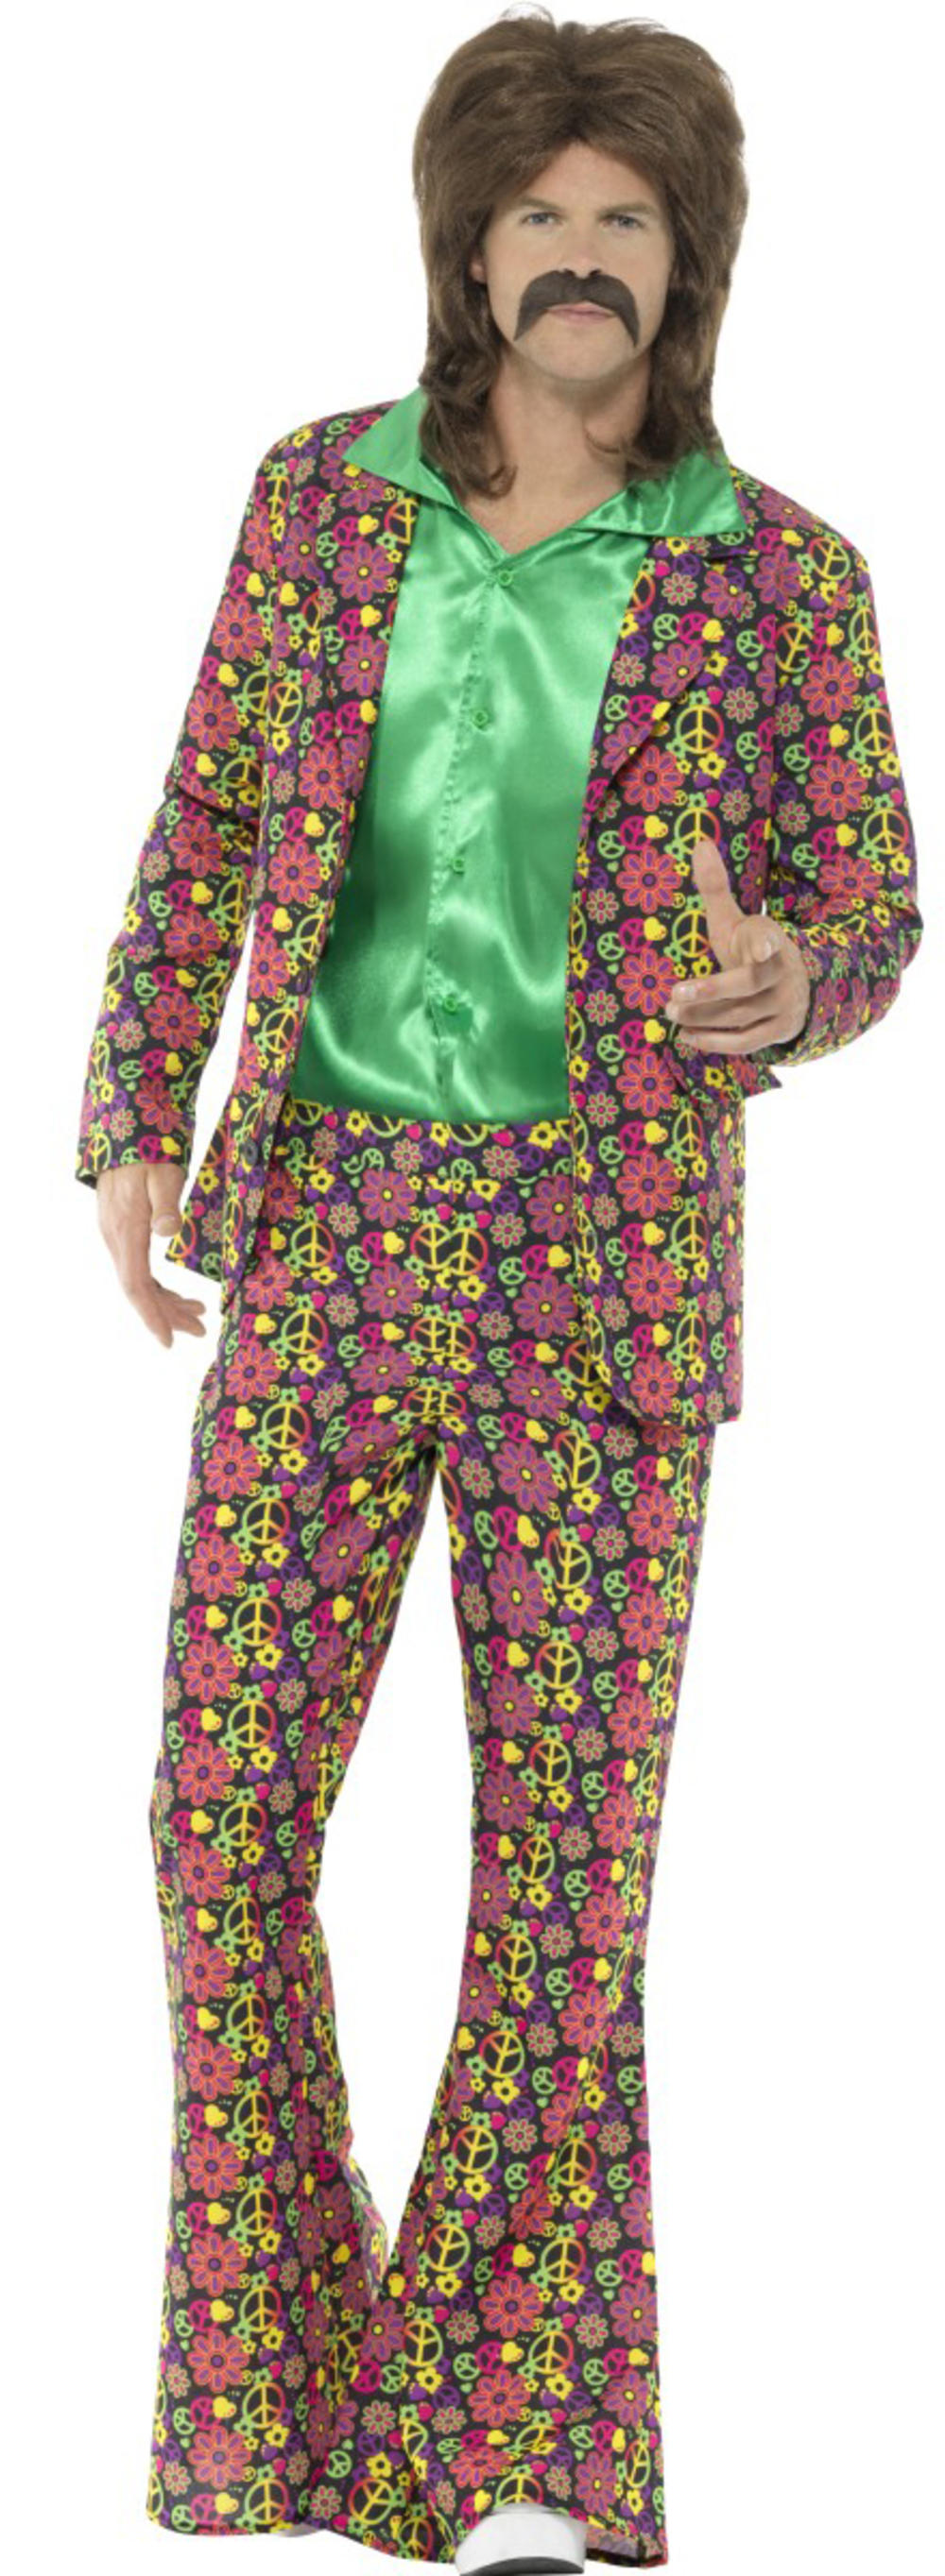 60s Psychedelic CND Hippie Suit Mens Fancy Dress 70s Groovy Hippy Adults Costume